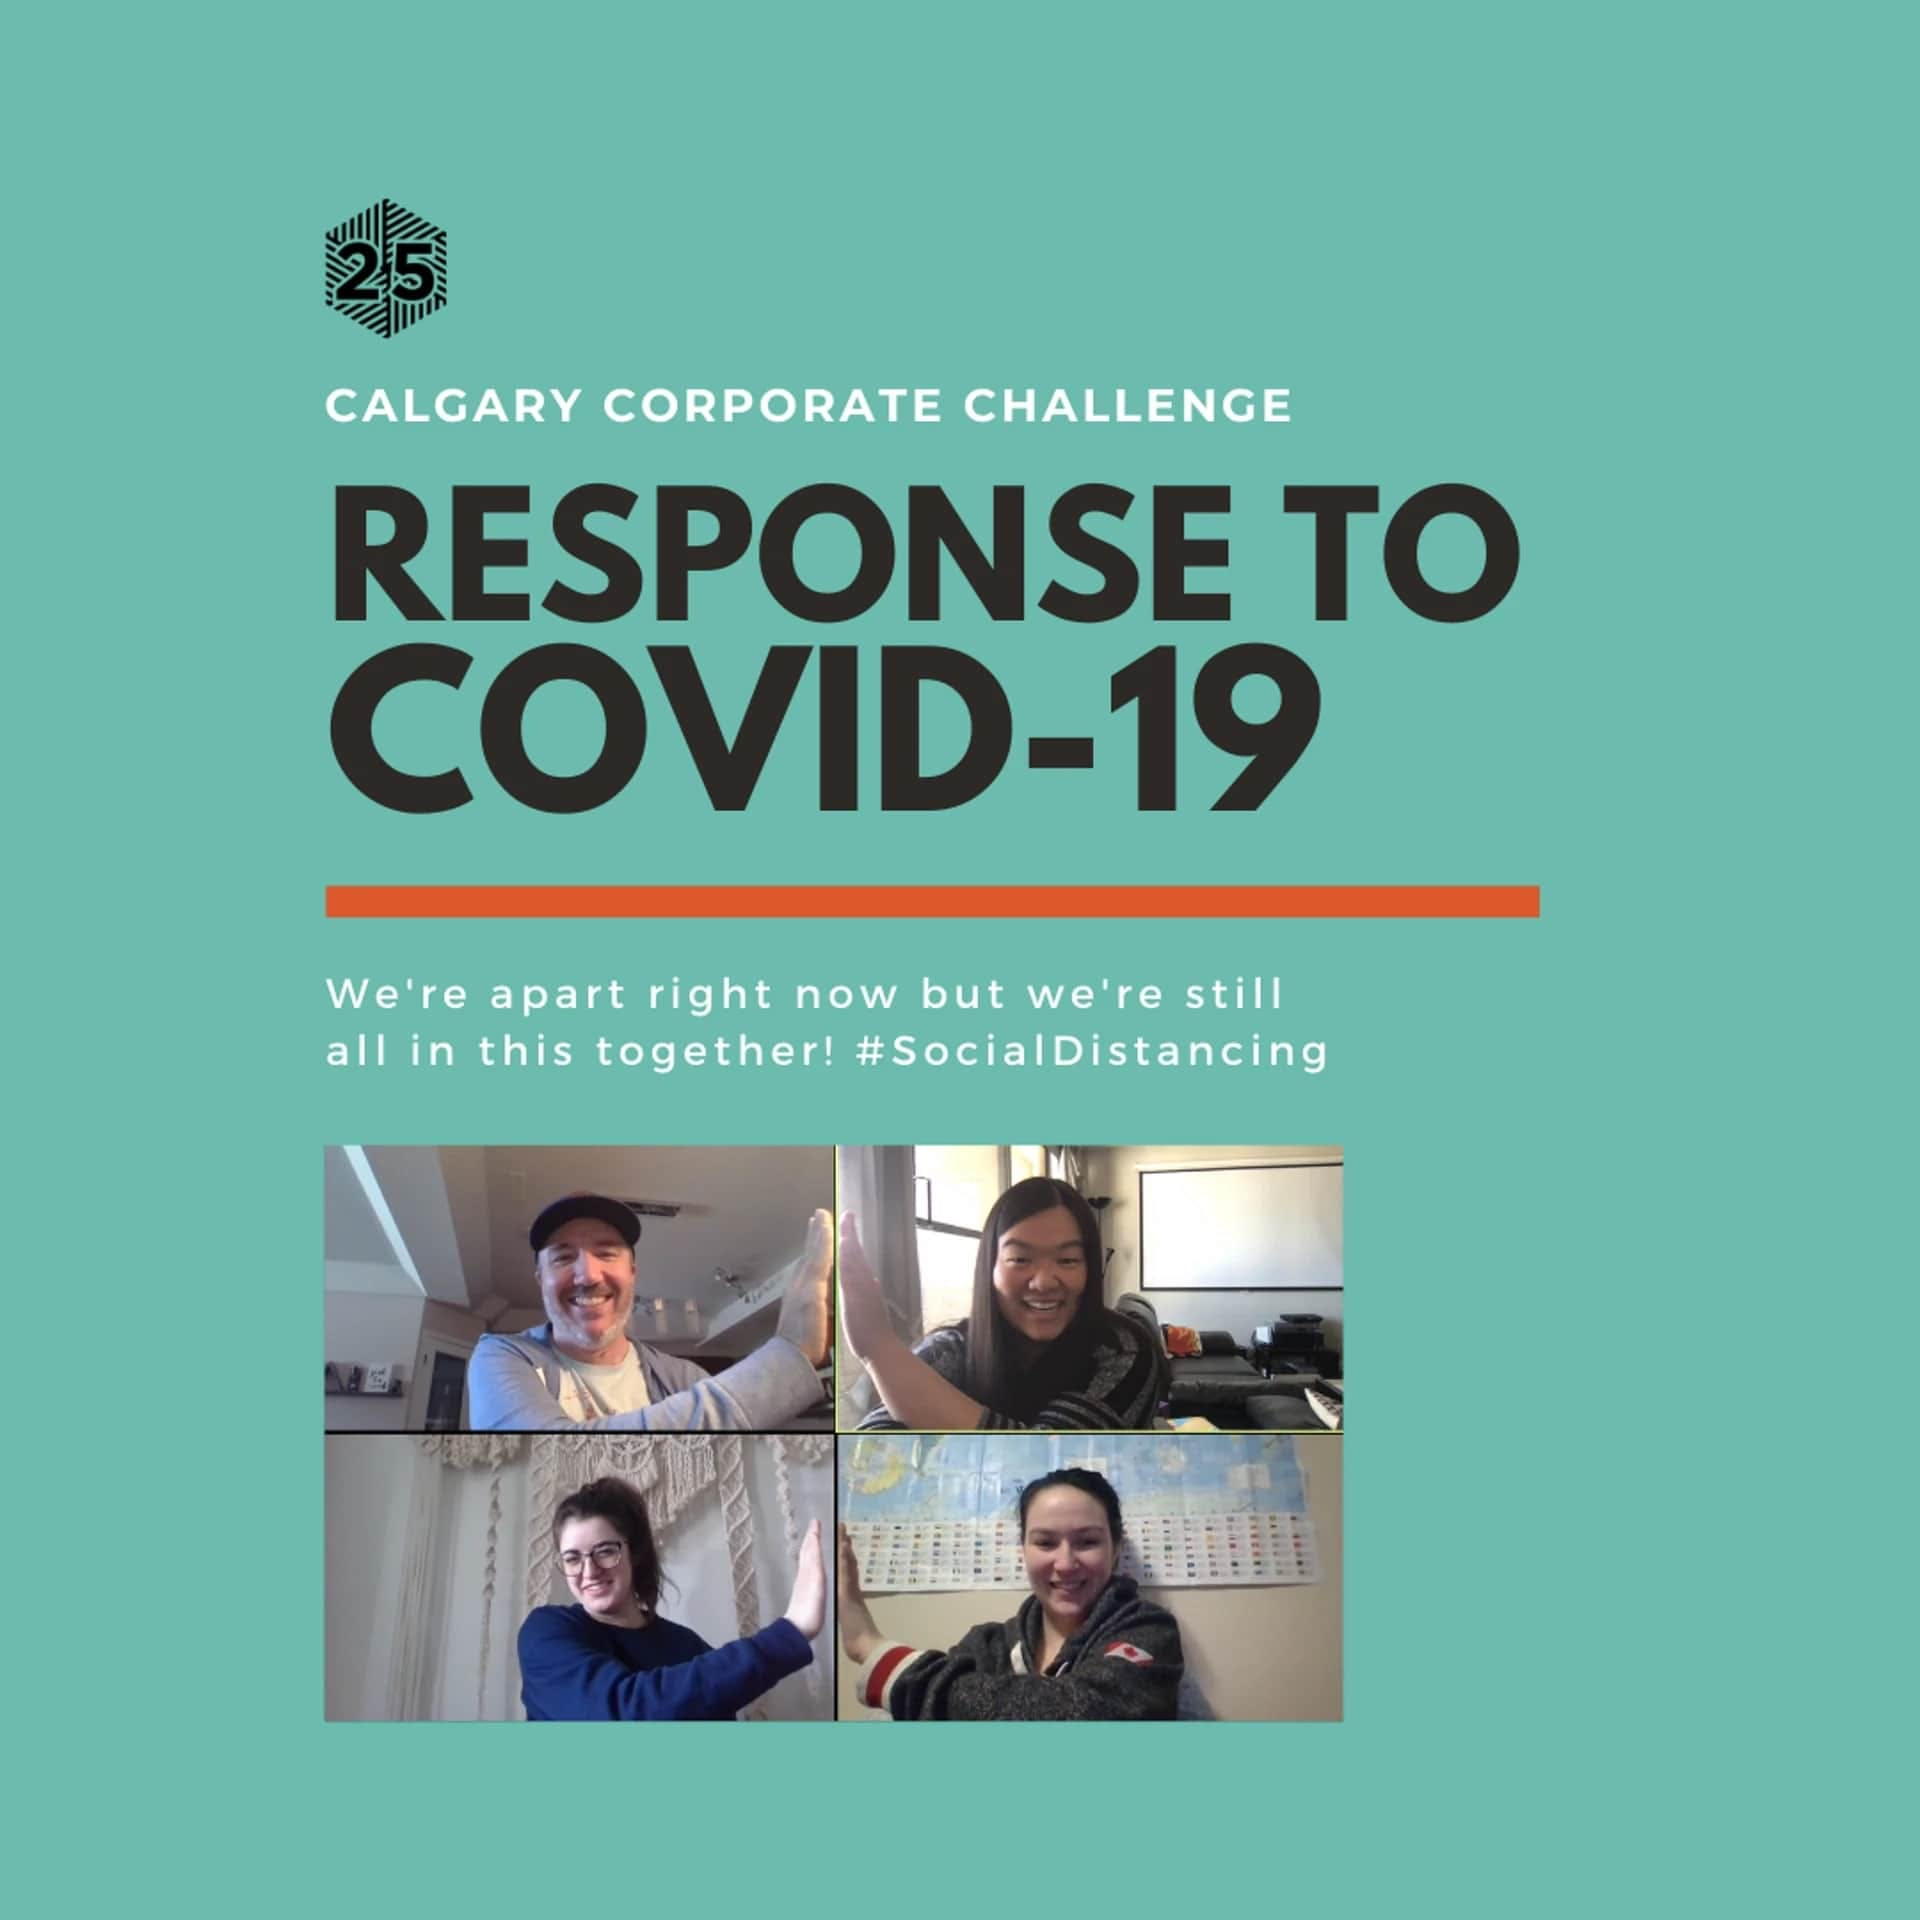 'Calgary Corporate Challenge's Response to COVID-19' on teal background